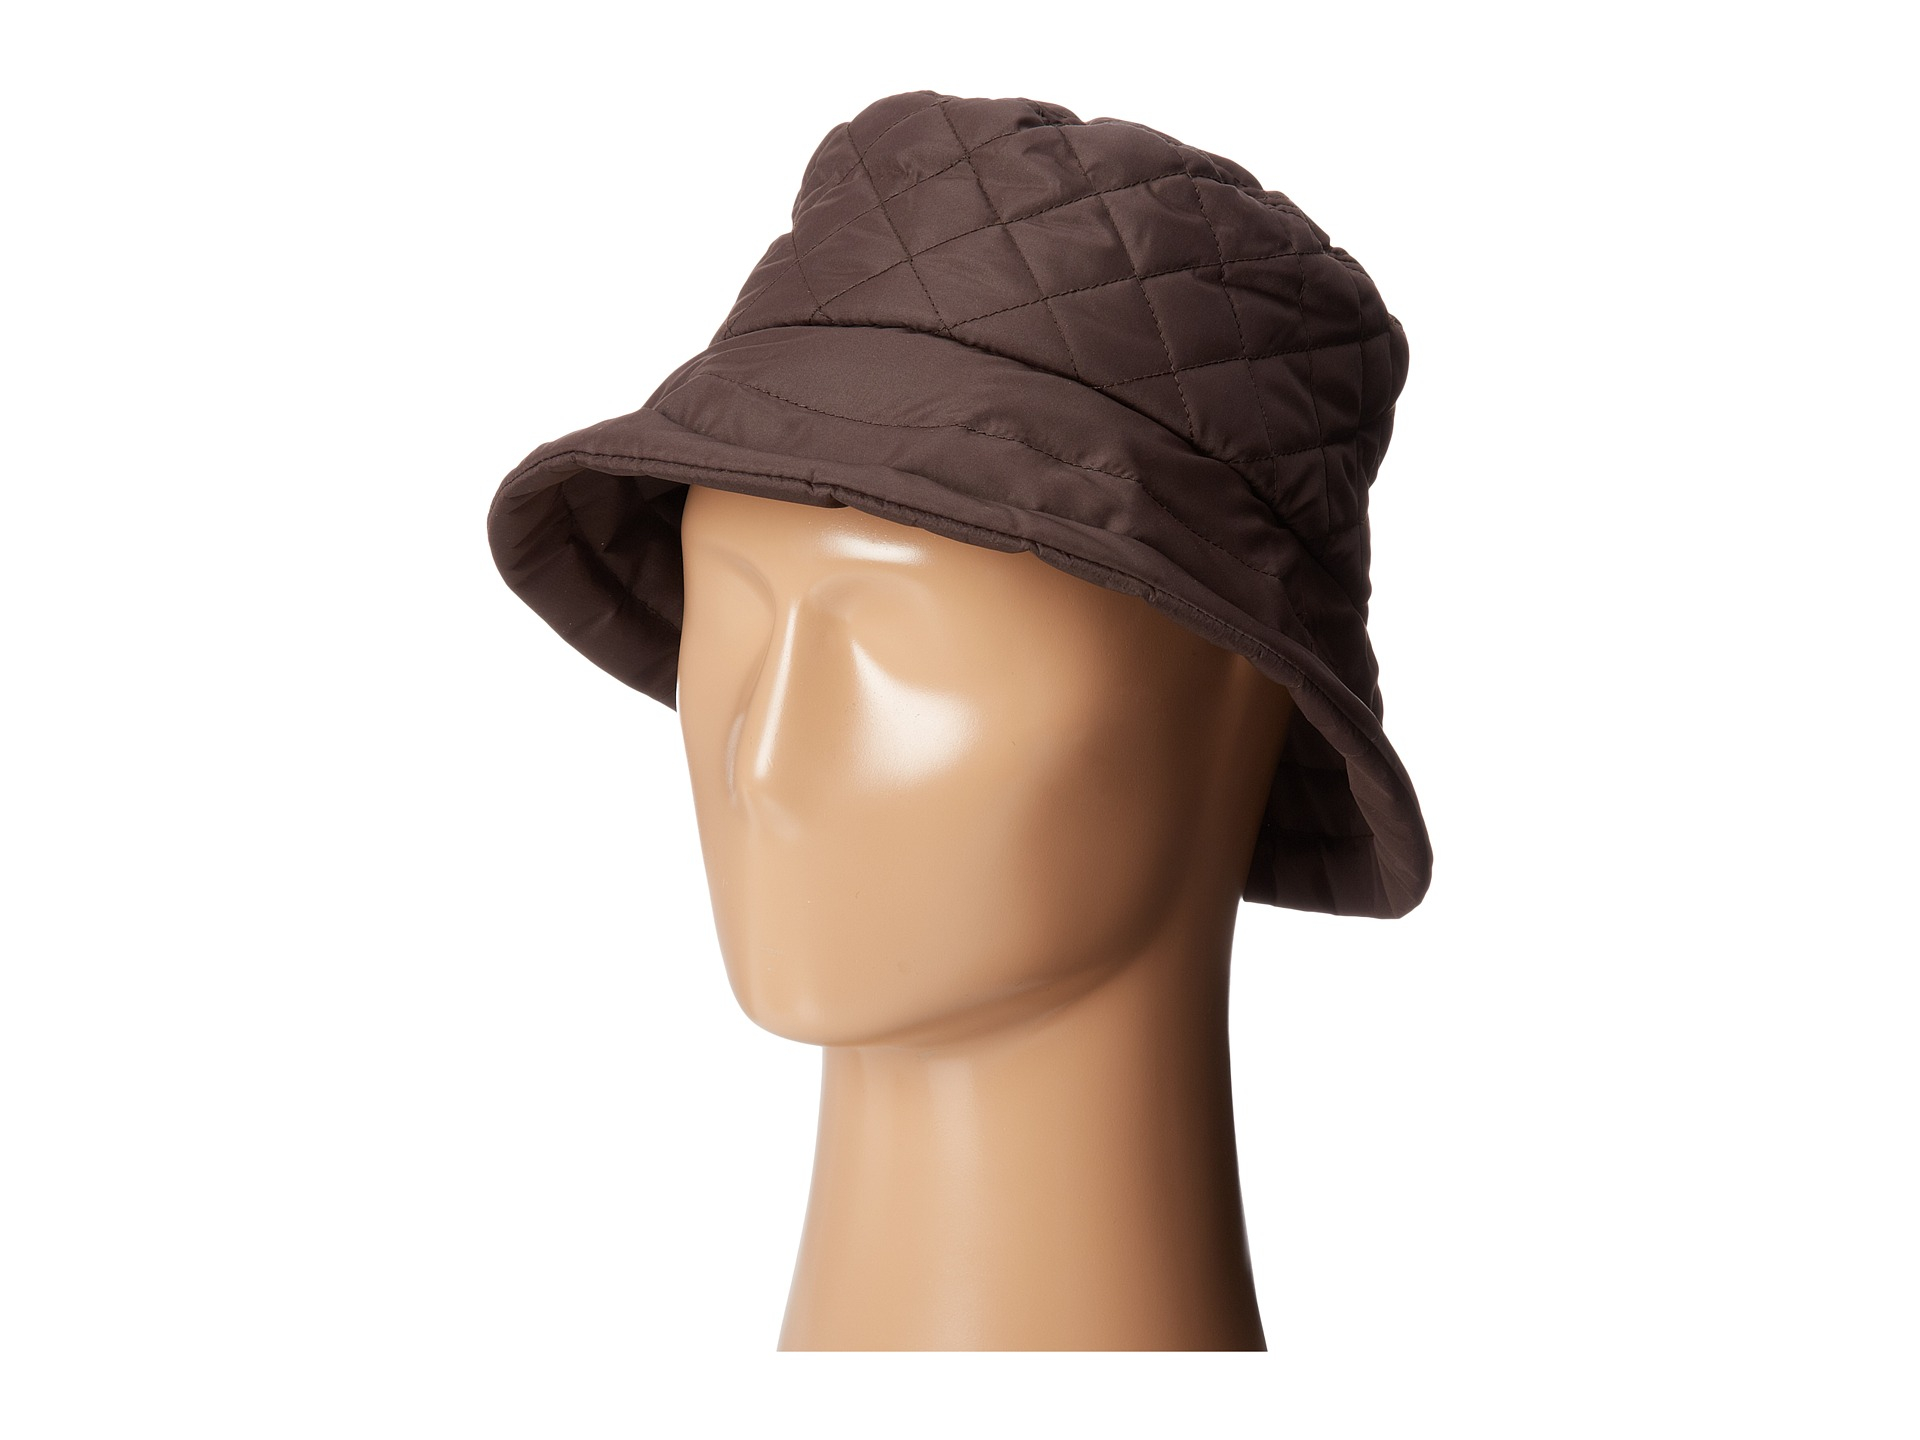 401a4b4e20e Lyst - Scala Quilted Rain Bucket Hat W  Fleece Lining in Brown